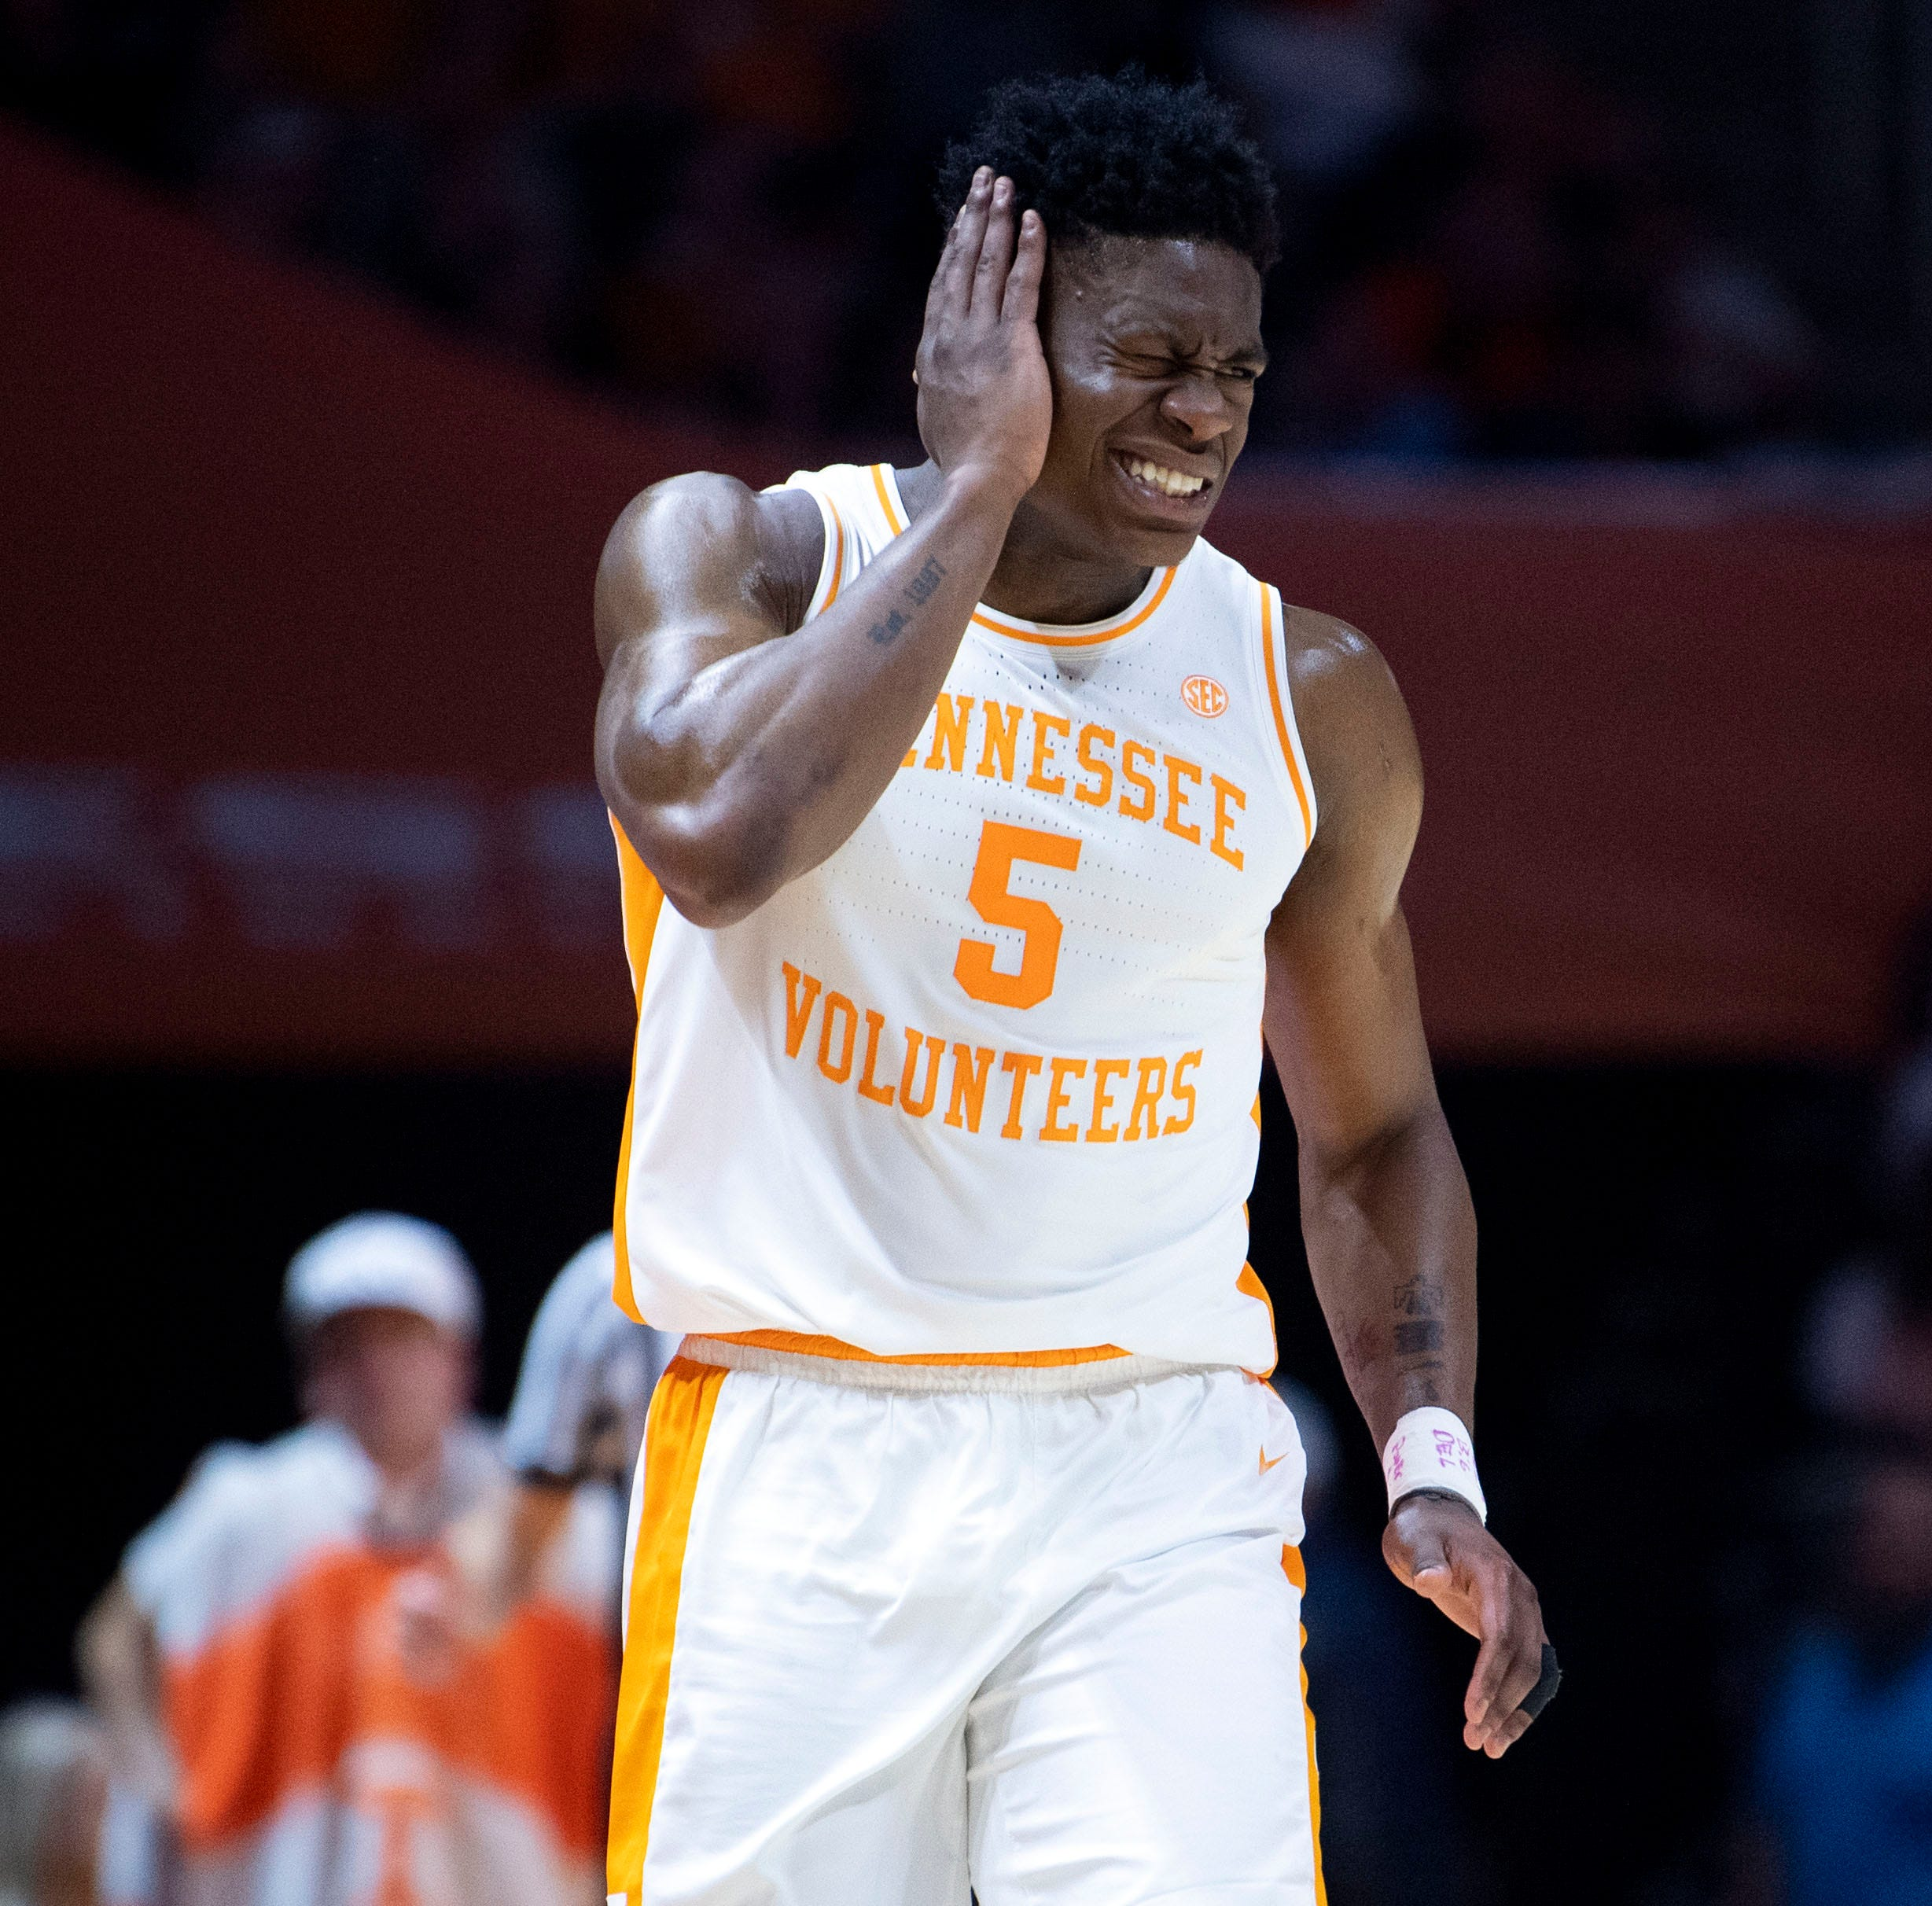 Tennessee basketball faces LSU in Baton Rouge